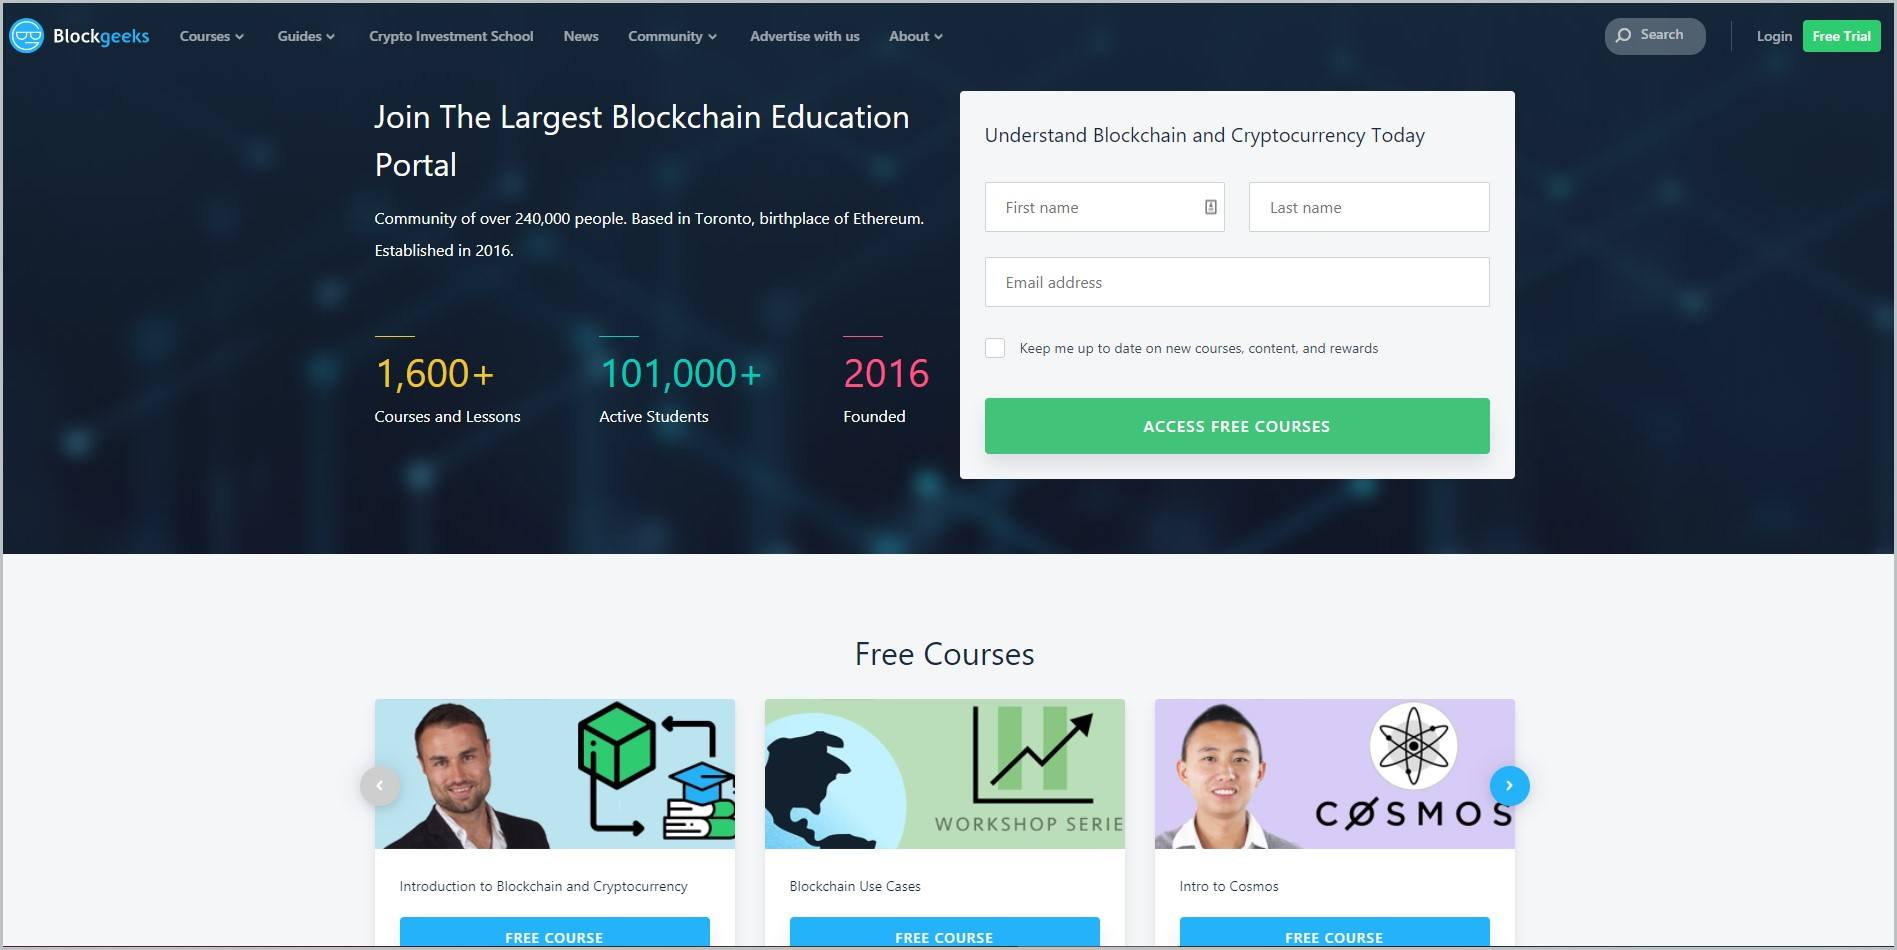 screenshot of Blockgeeks homepage which is dominantly dark blue, header bears the website's name and main navigation menu, it showcases a white signup form for access to a free course